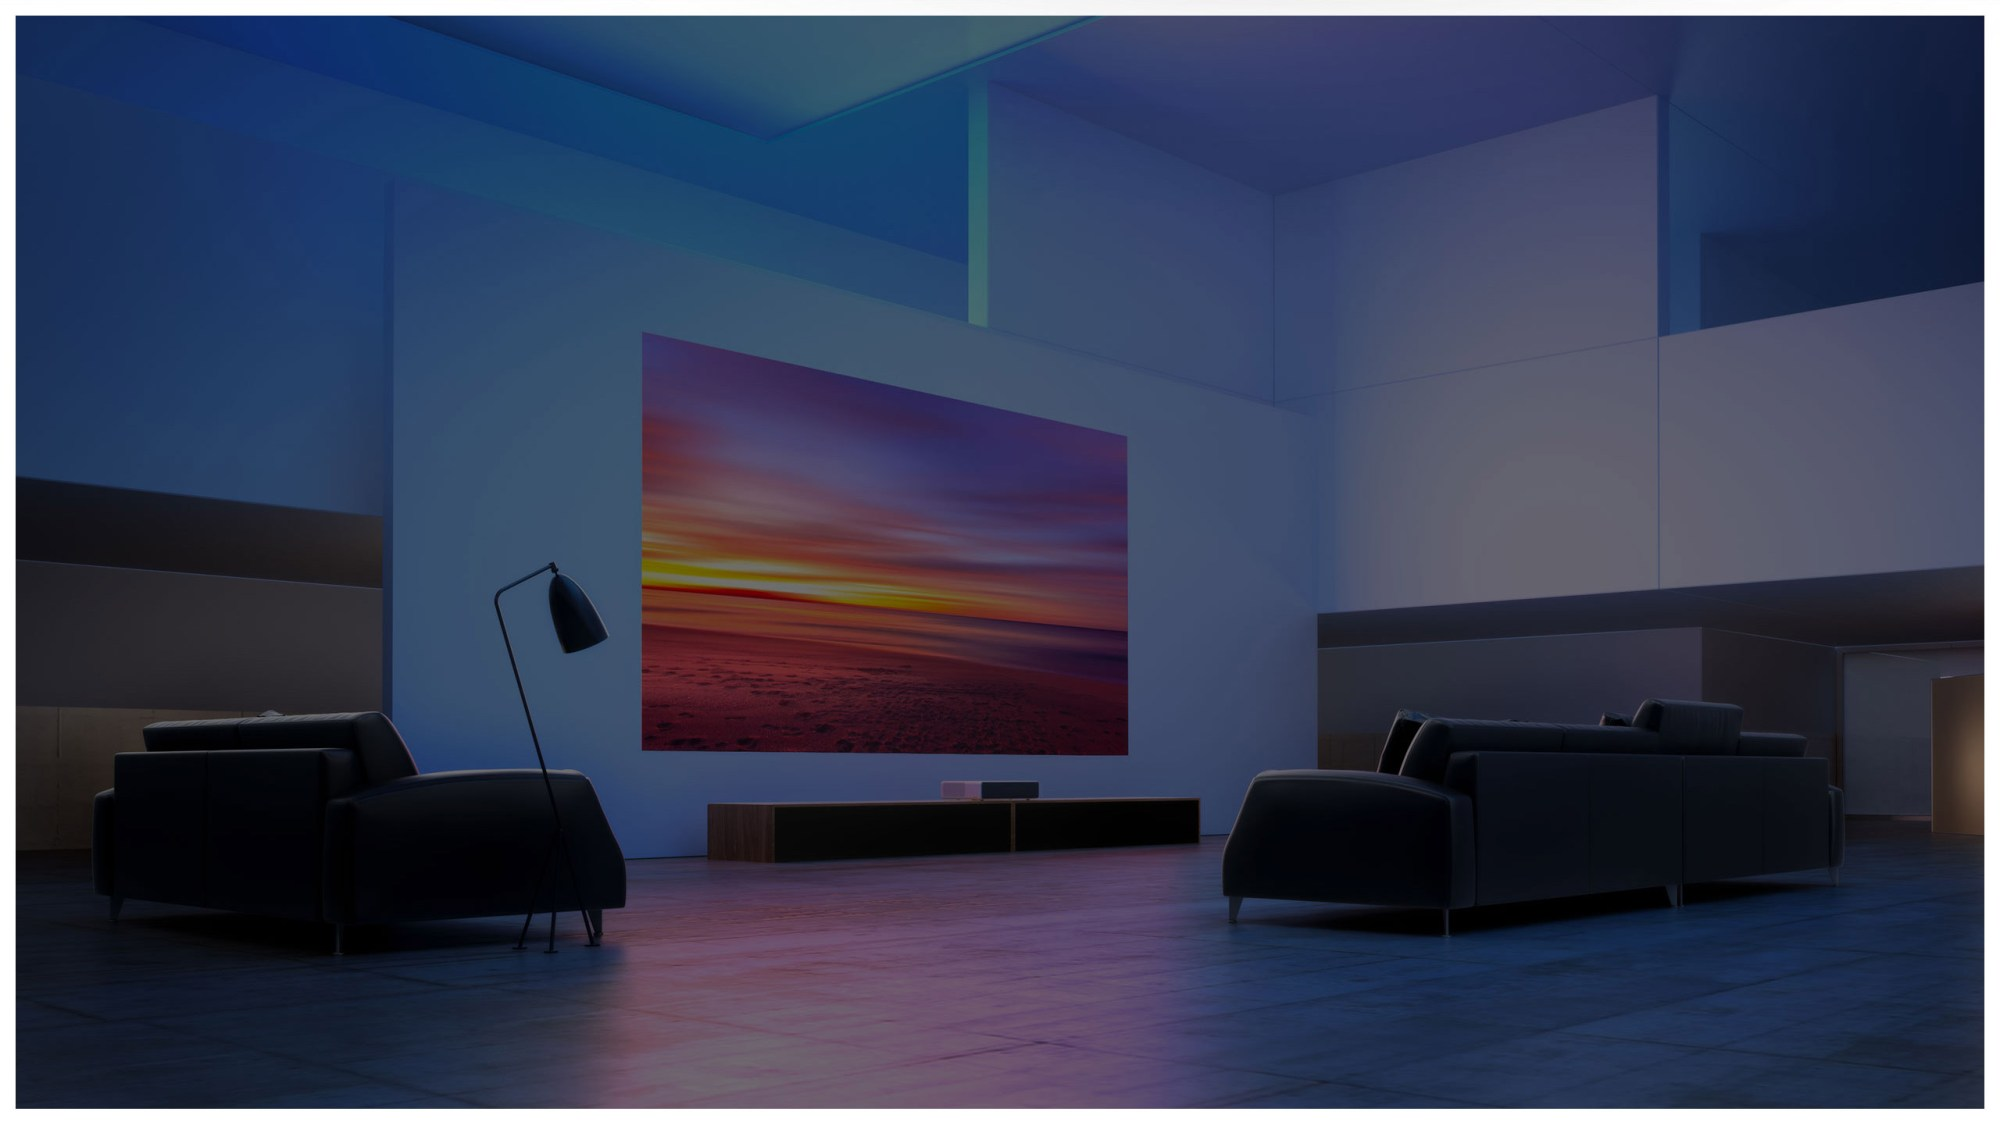 hight resolution of xiaomi laser projector can project a screen as large as 150 inches bring the private theatre into your home